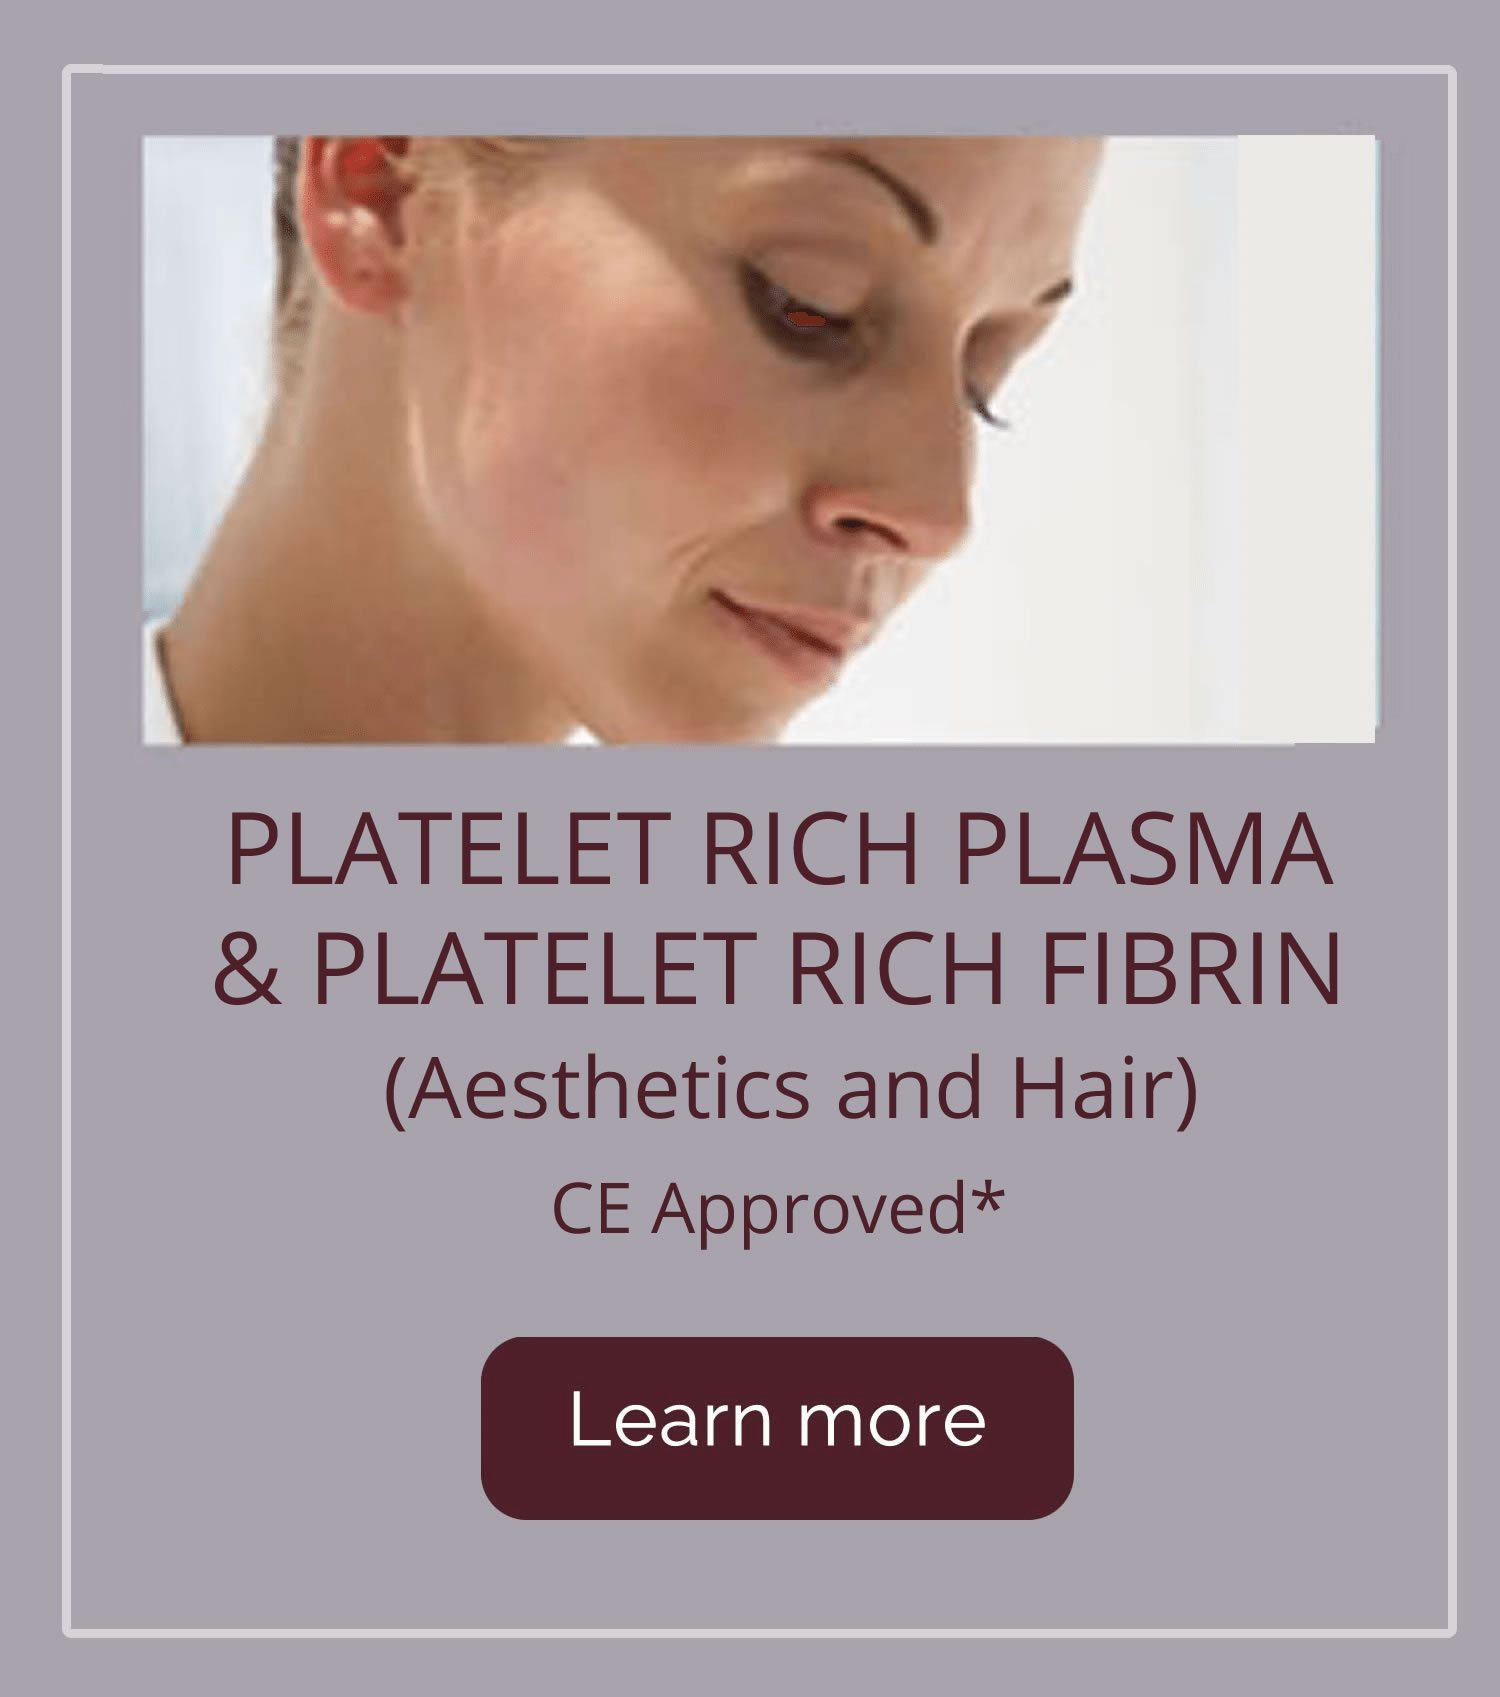 Platelet Rich Plasma & Platelet Rich Fibrin (Aesthetics and Hair)